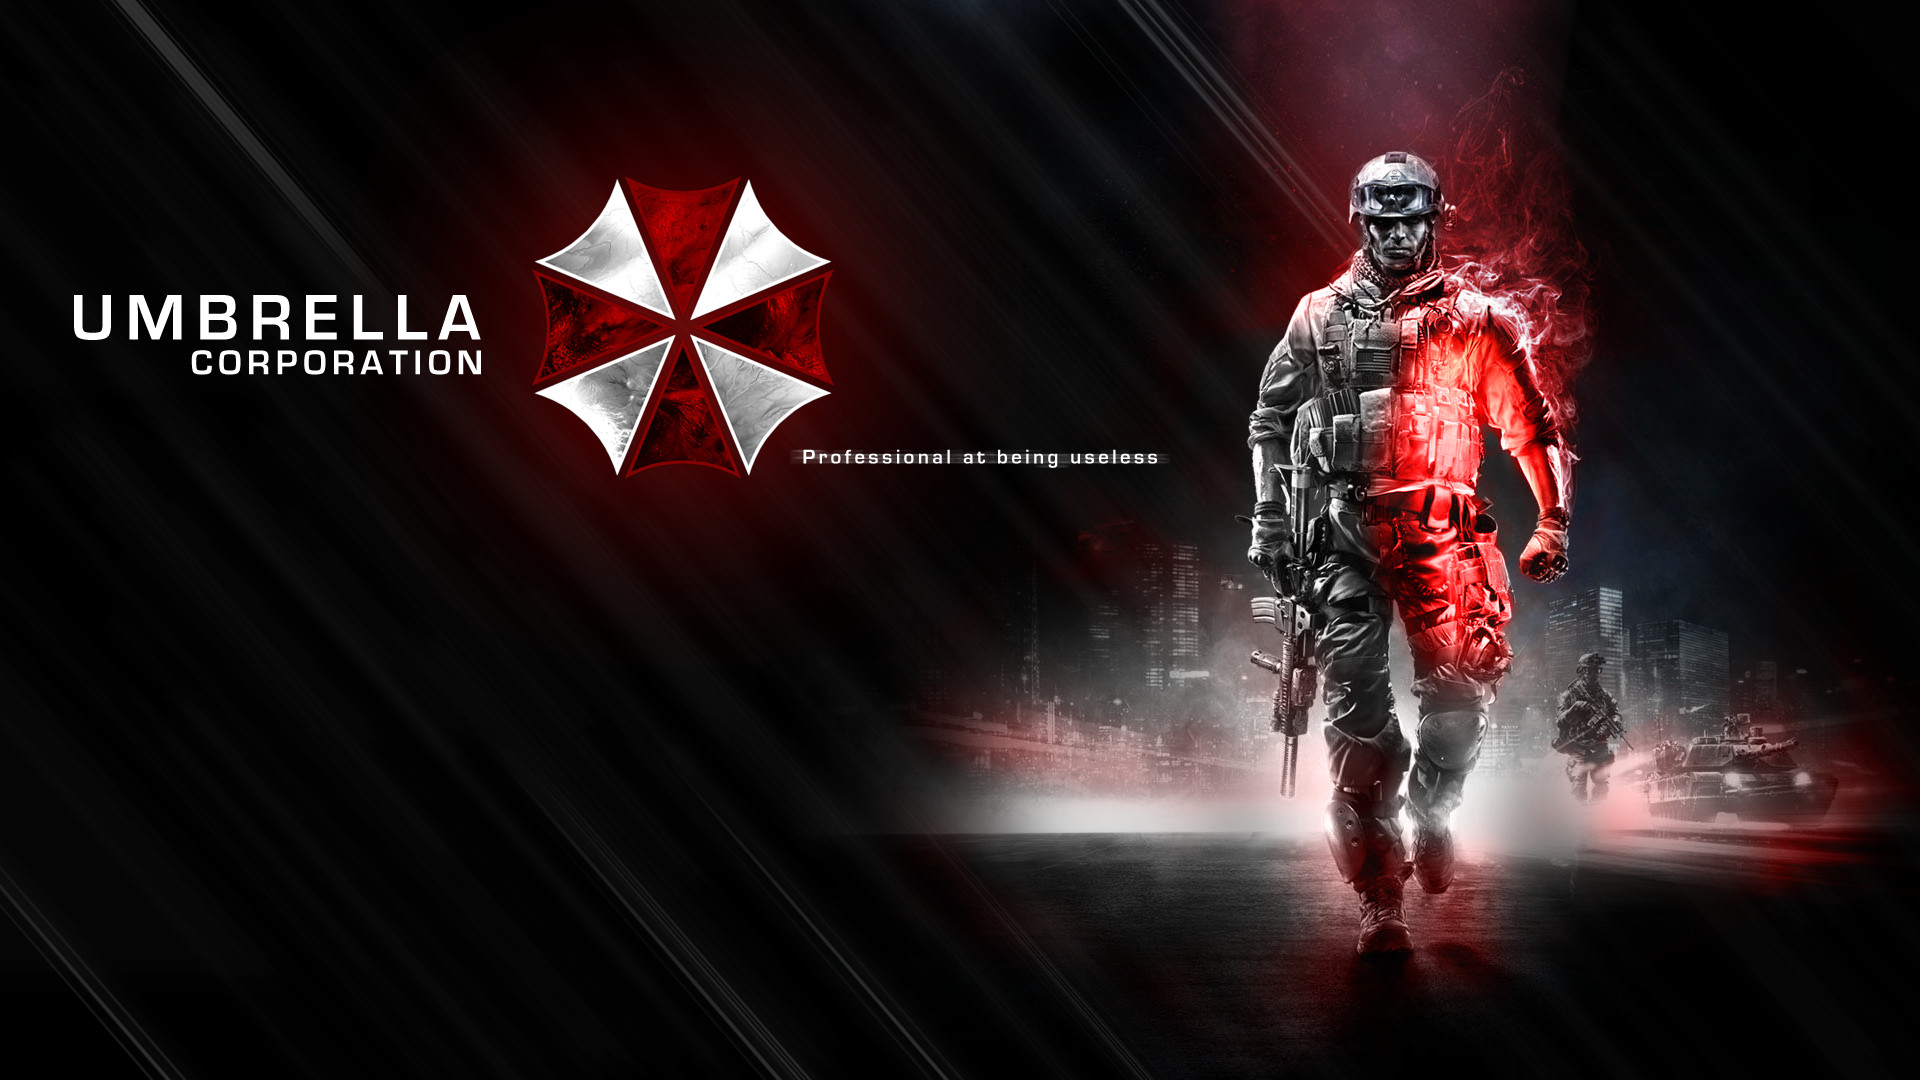 Umbrella corporation background 1920x1080 umbrella corporation wallpapers umbrella corporation backgrounds voltagebd Images